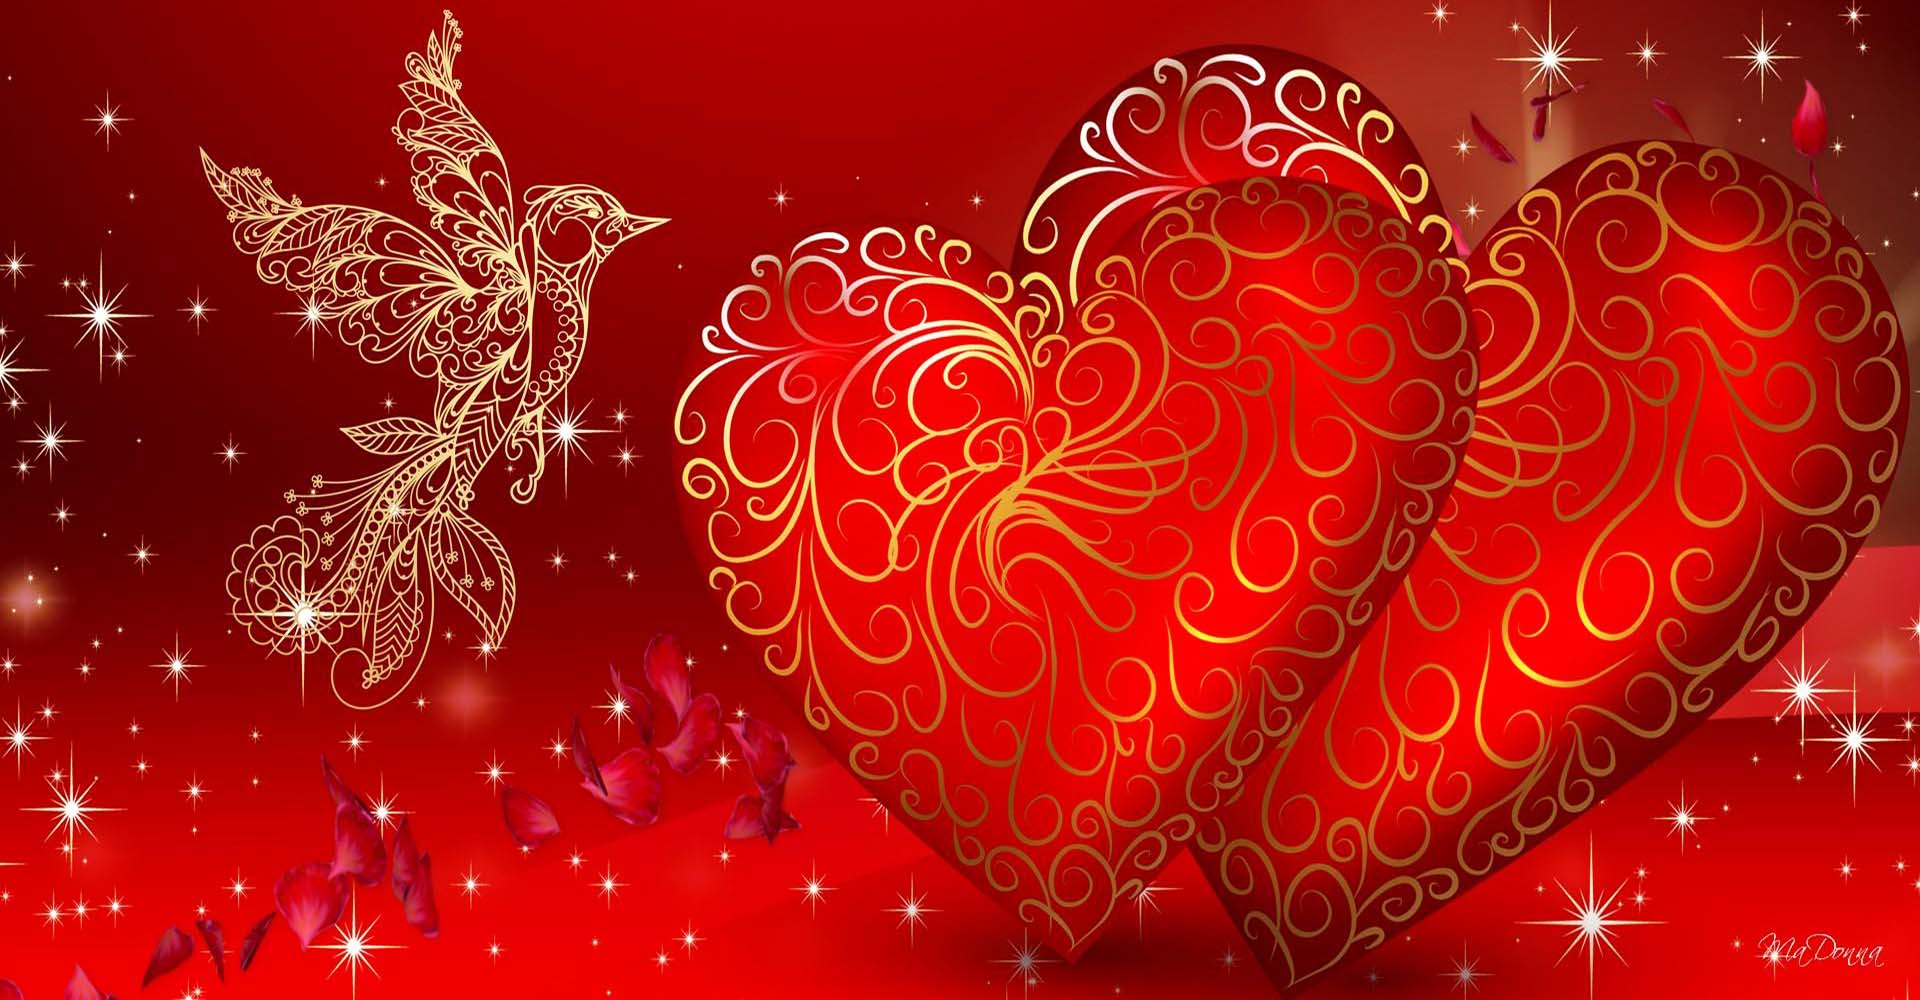 Love Wallpaper Portrait : Love Heart Wallpapers 2016 - Wallpaper cave